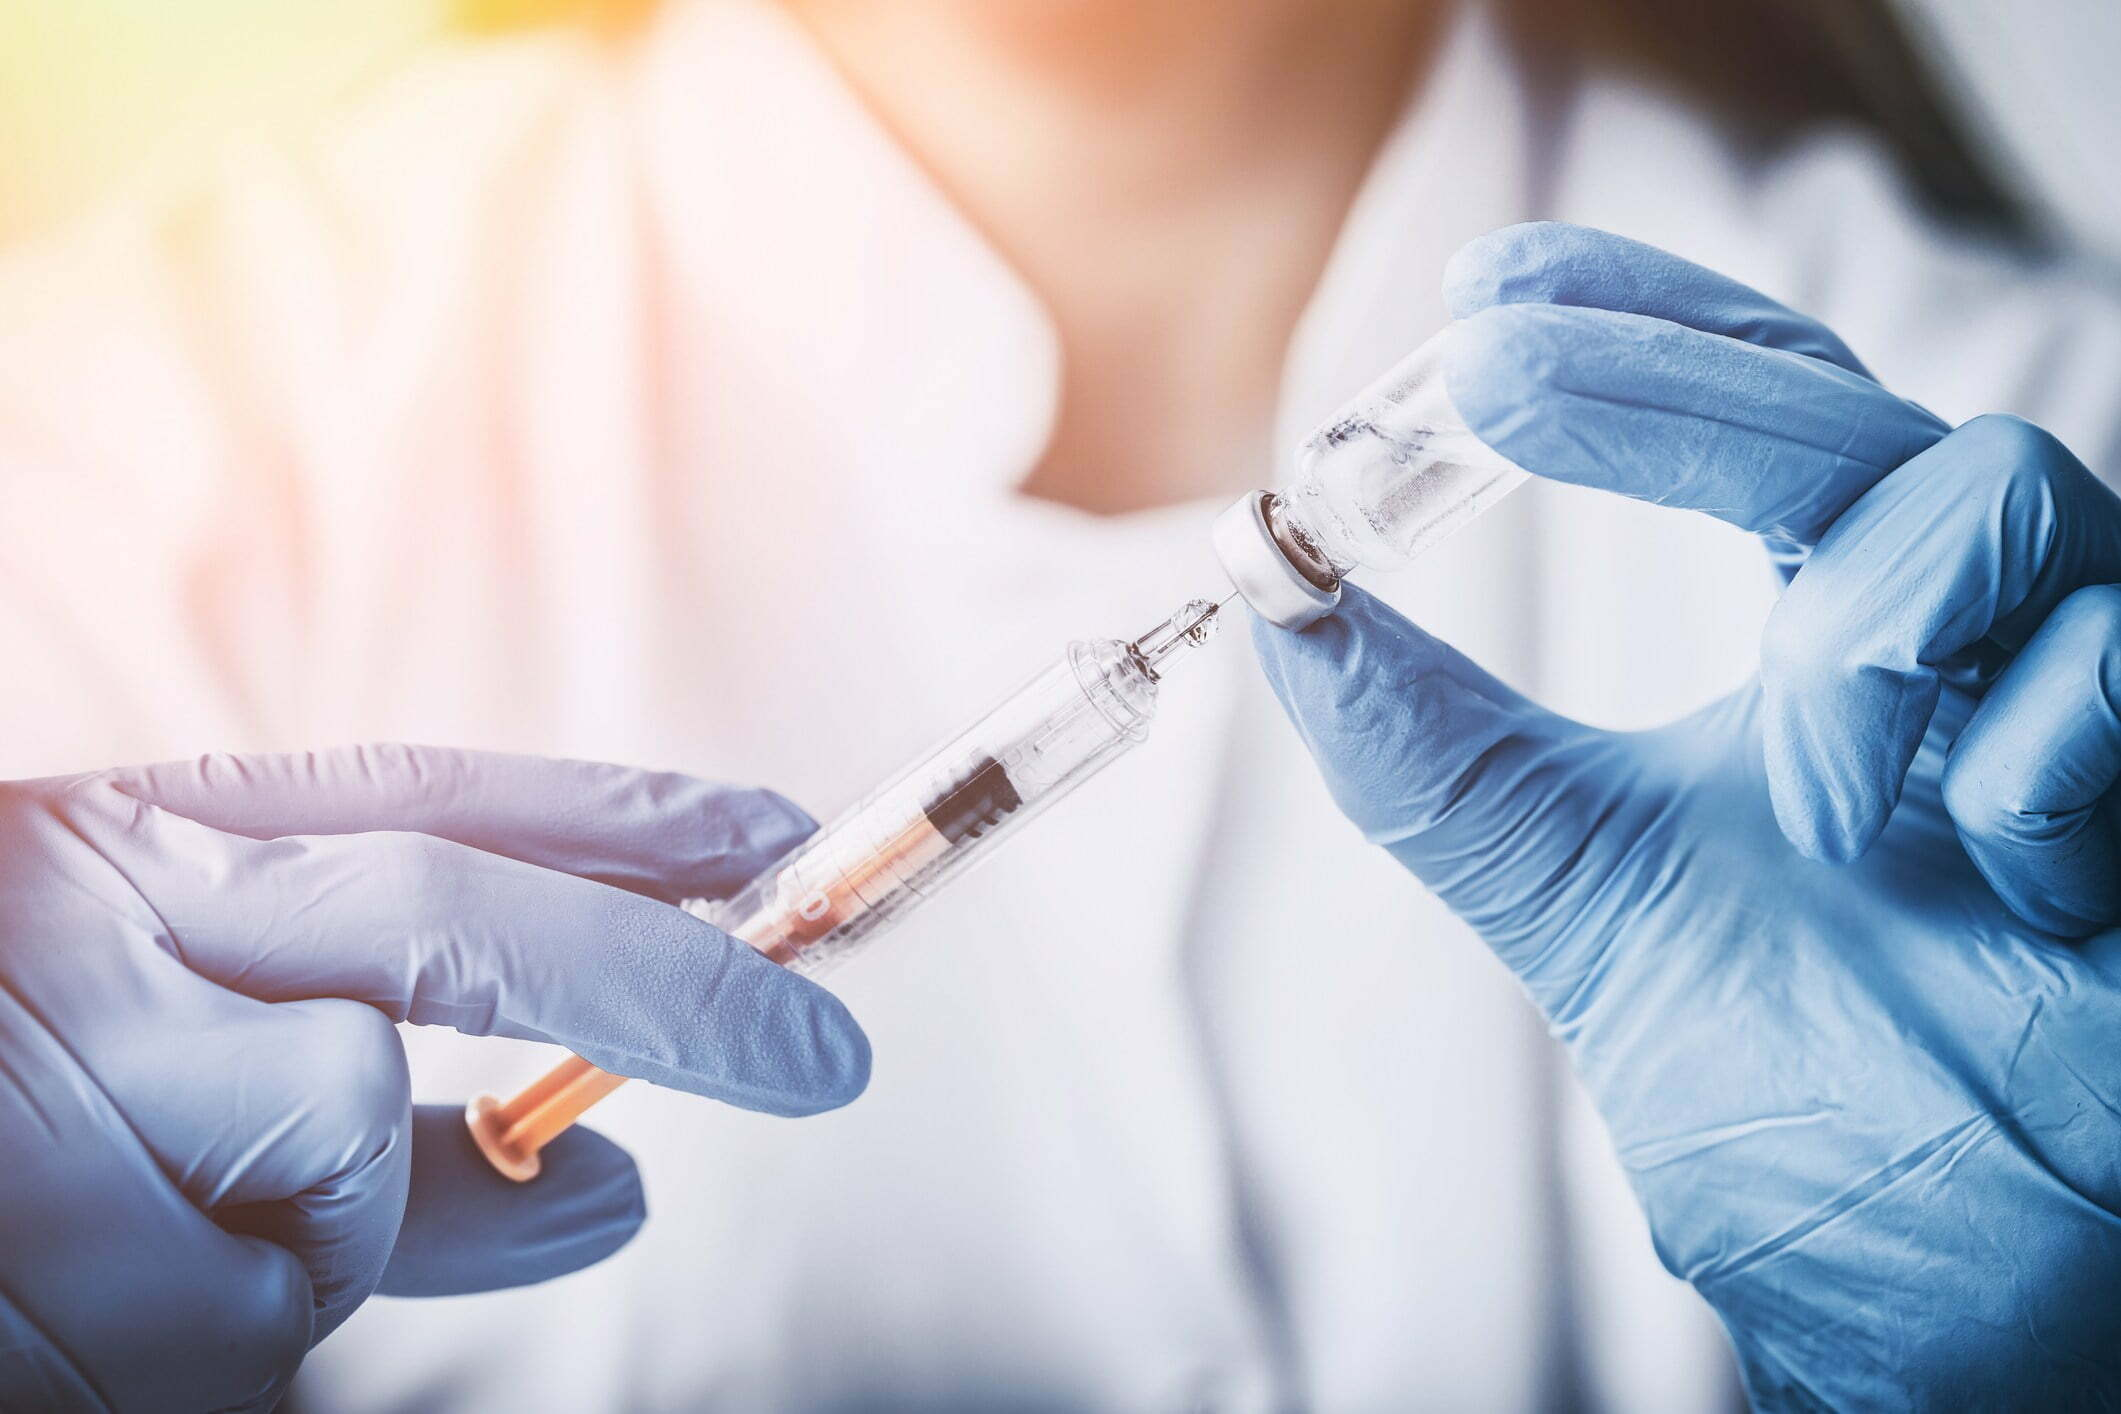 Some Anti-Vaxxers are Changing Their Minds Because of the Coronavirus Pandemic 2